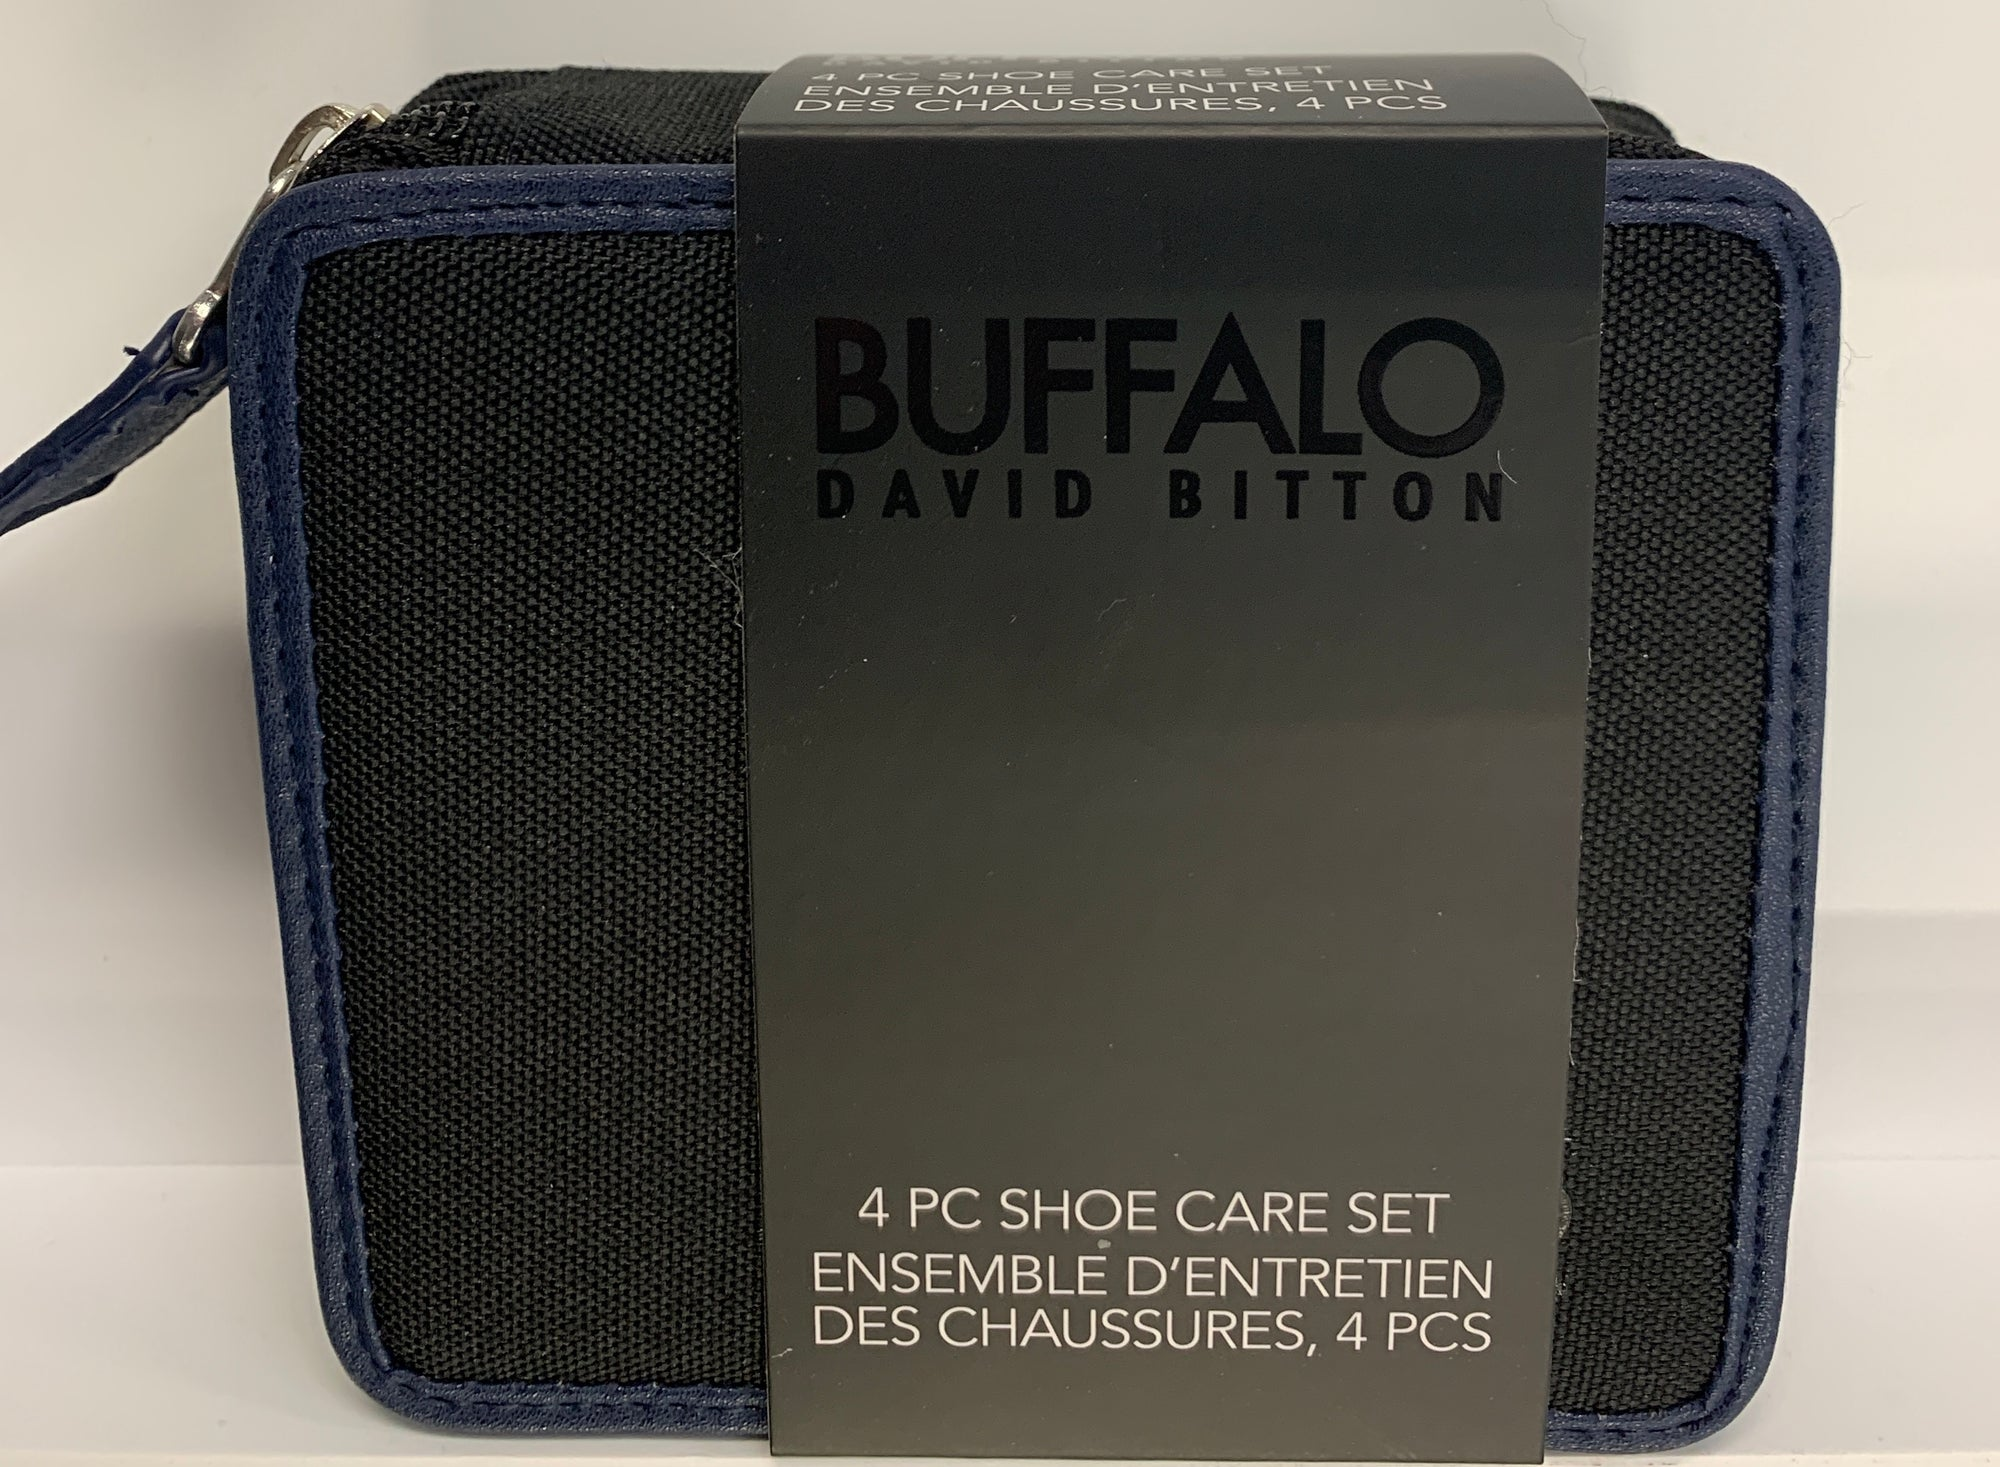 Buffalo David Bitton 4c Shoe Care Set